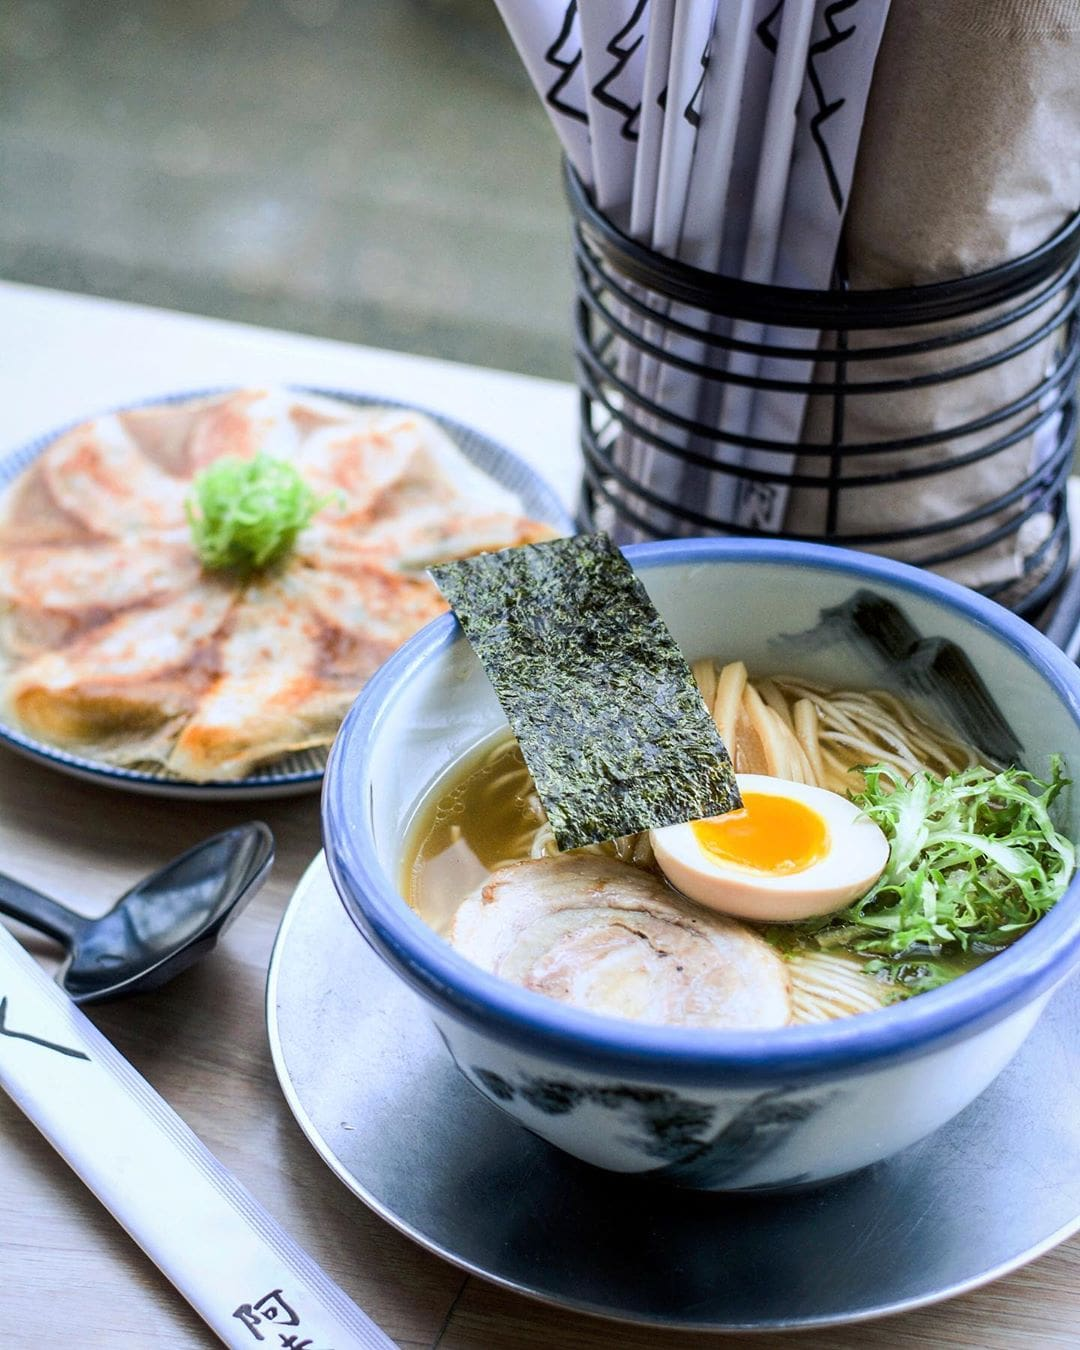 Afuri Ramen - yuzu shoyu ramen and dumplings